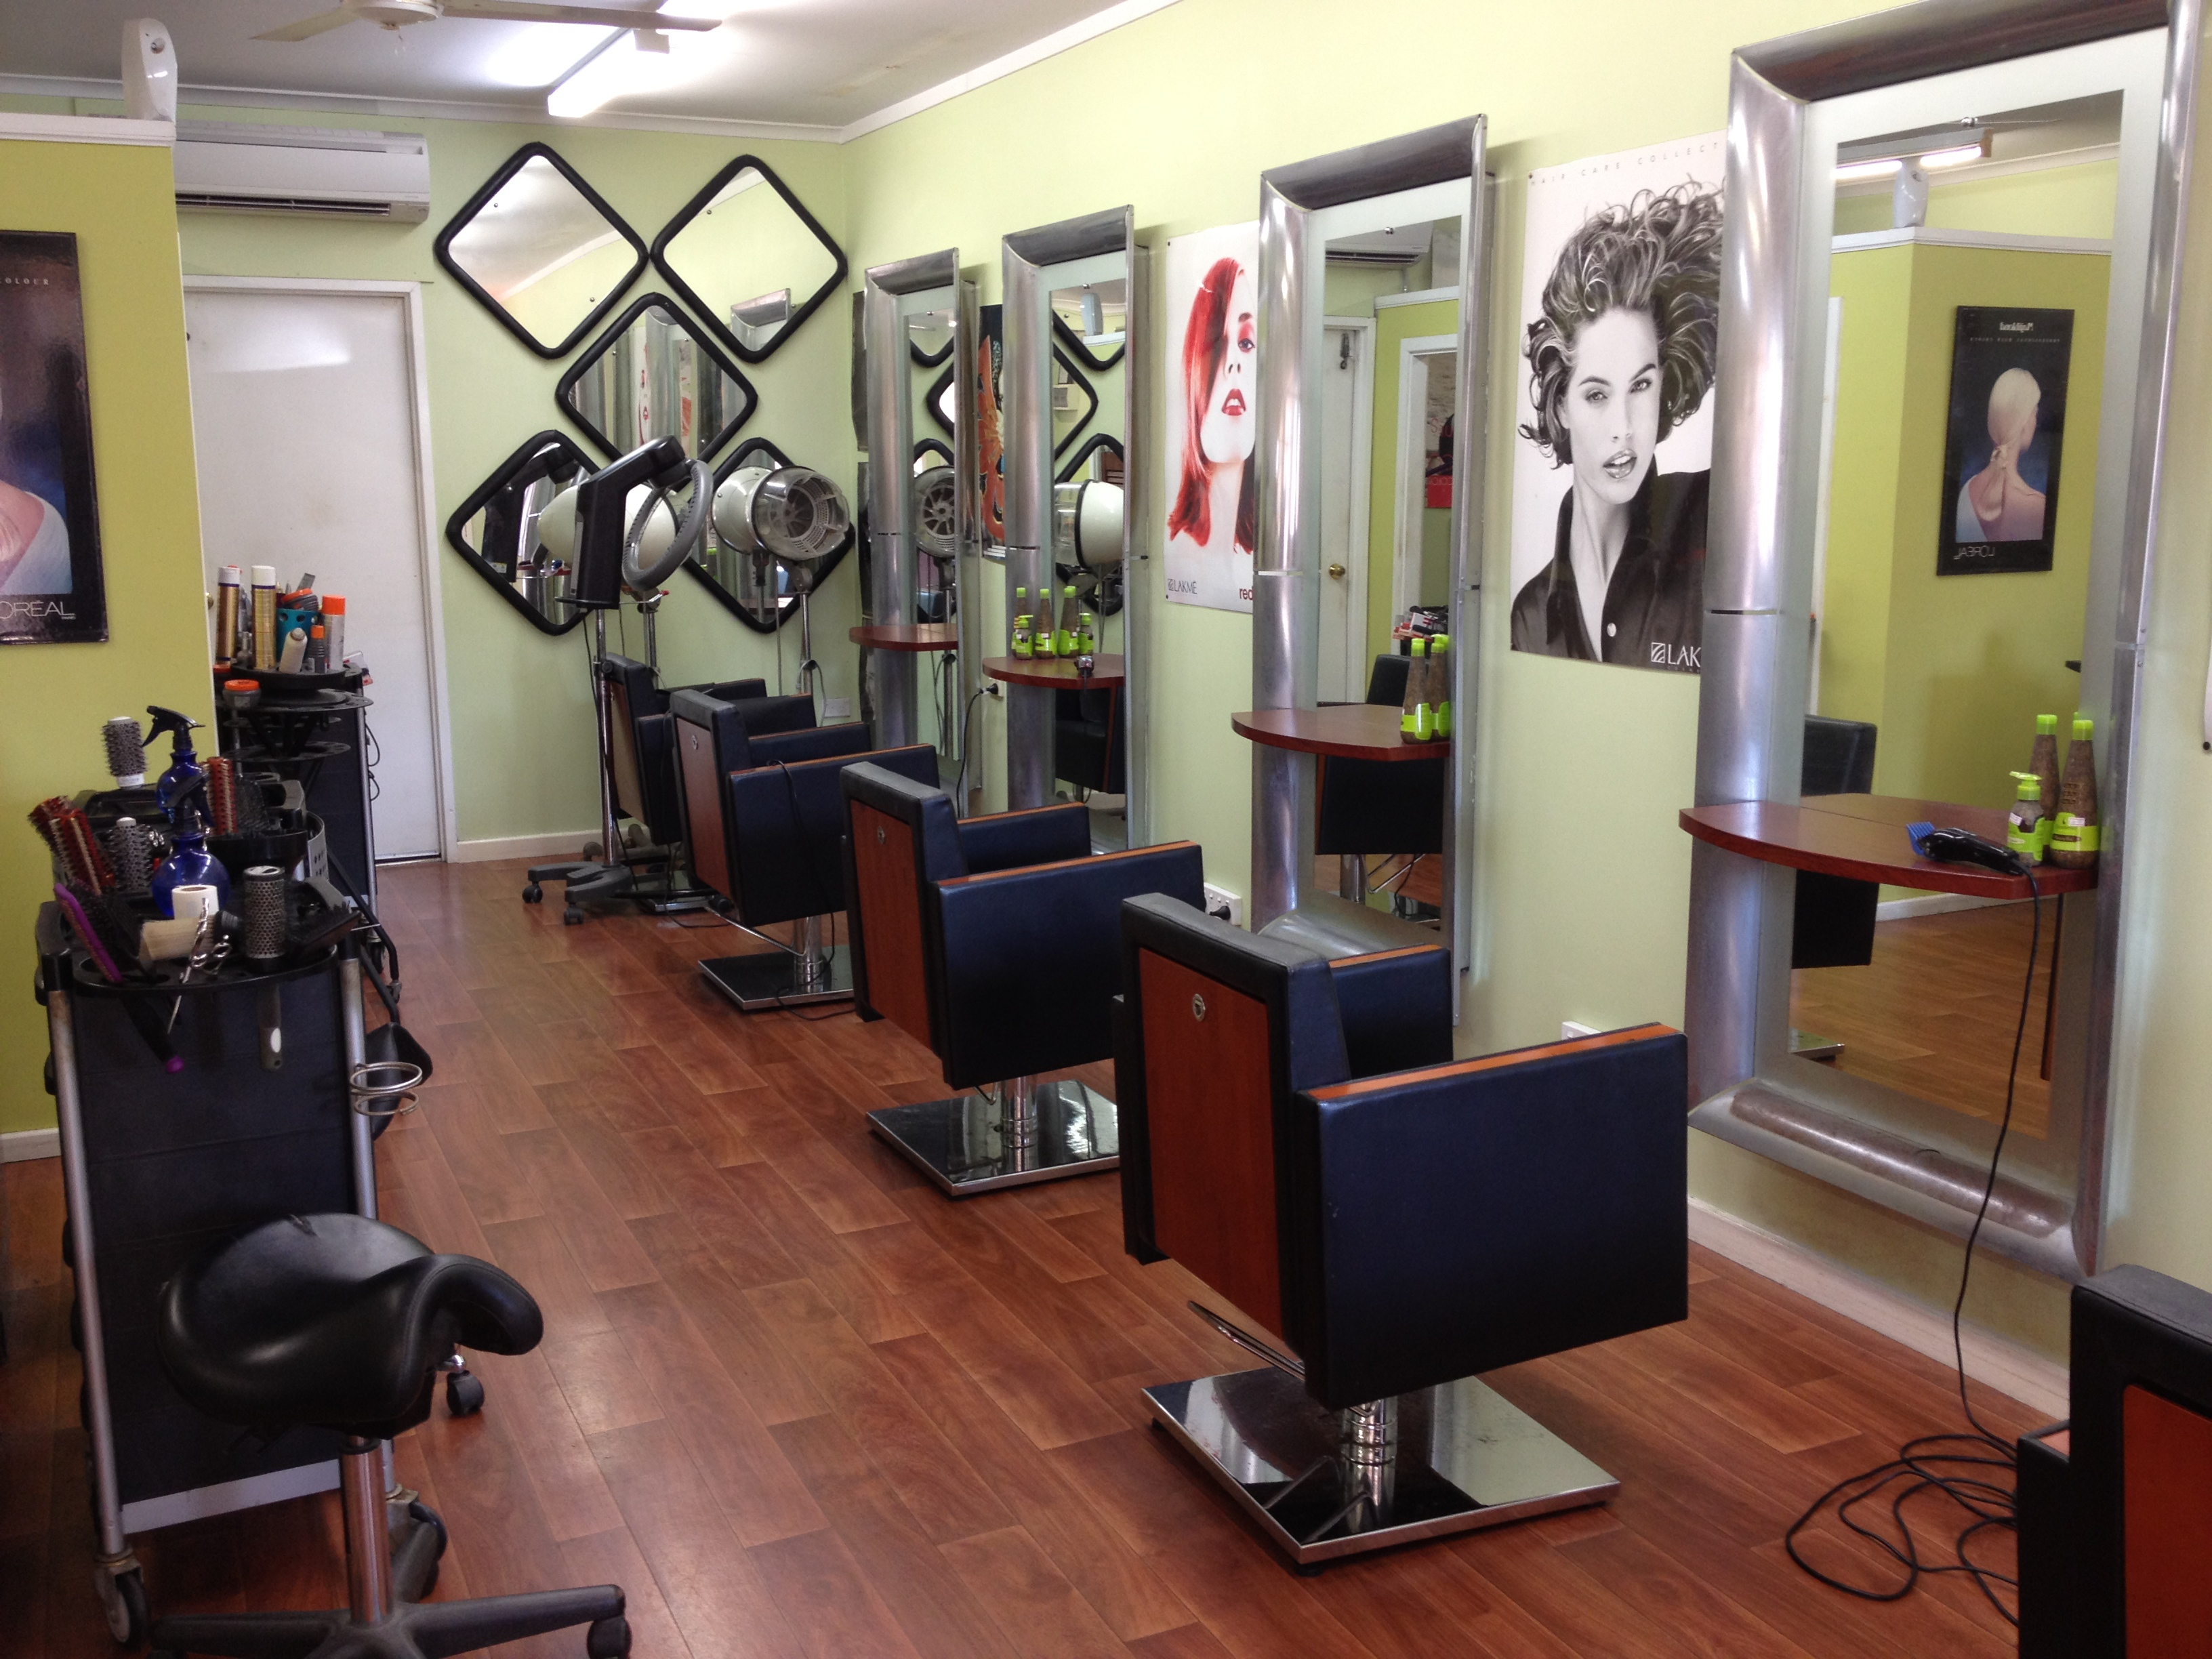 Hair Salon Broome is the best hair salon in Broome. Call our hair